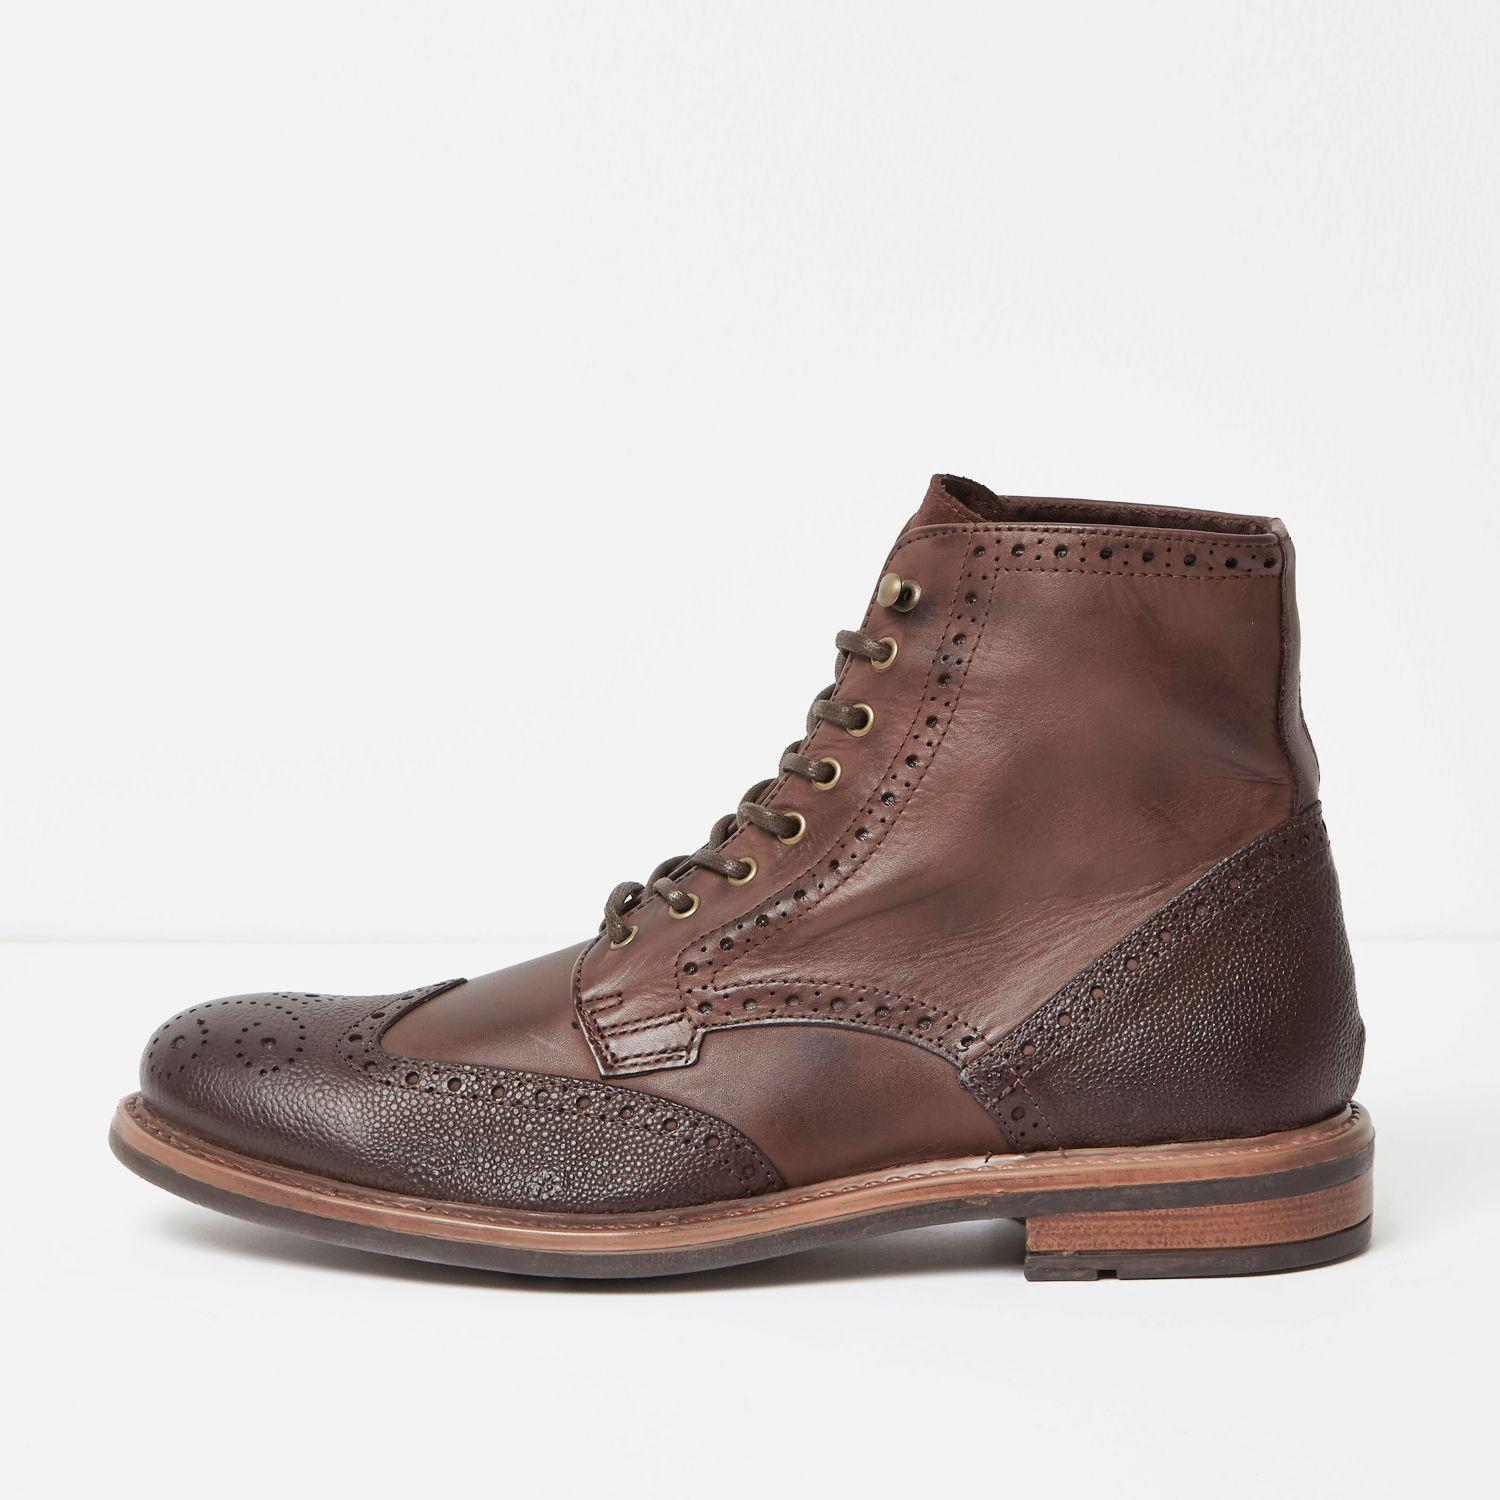 River Island Brown Leather Brogue Boots In Brown For Men